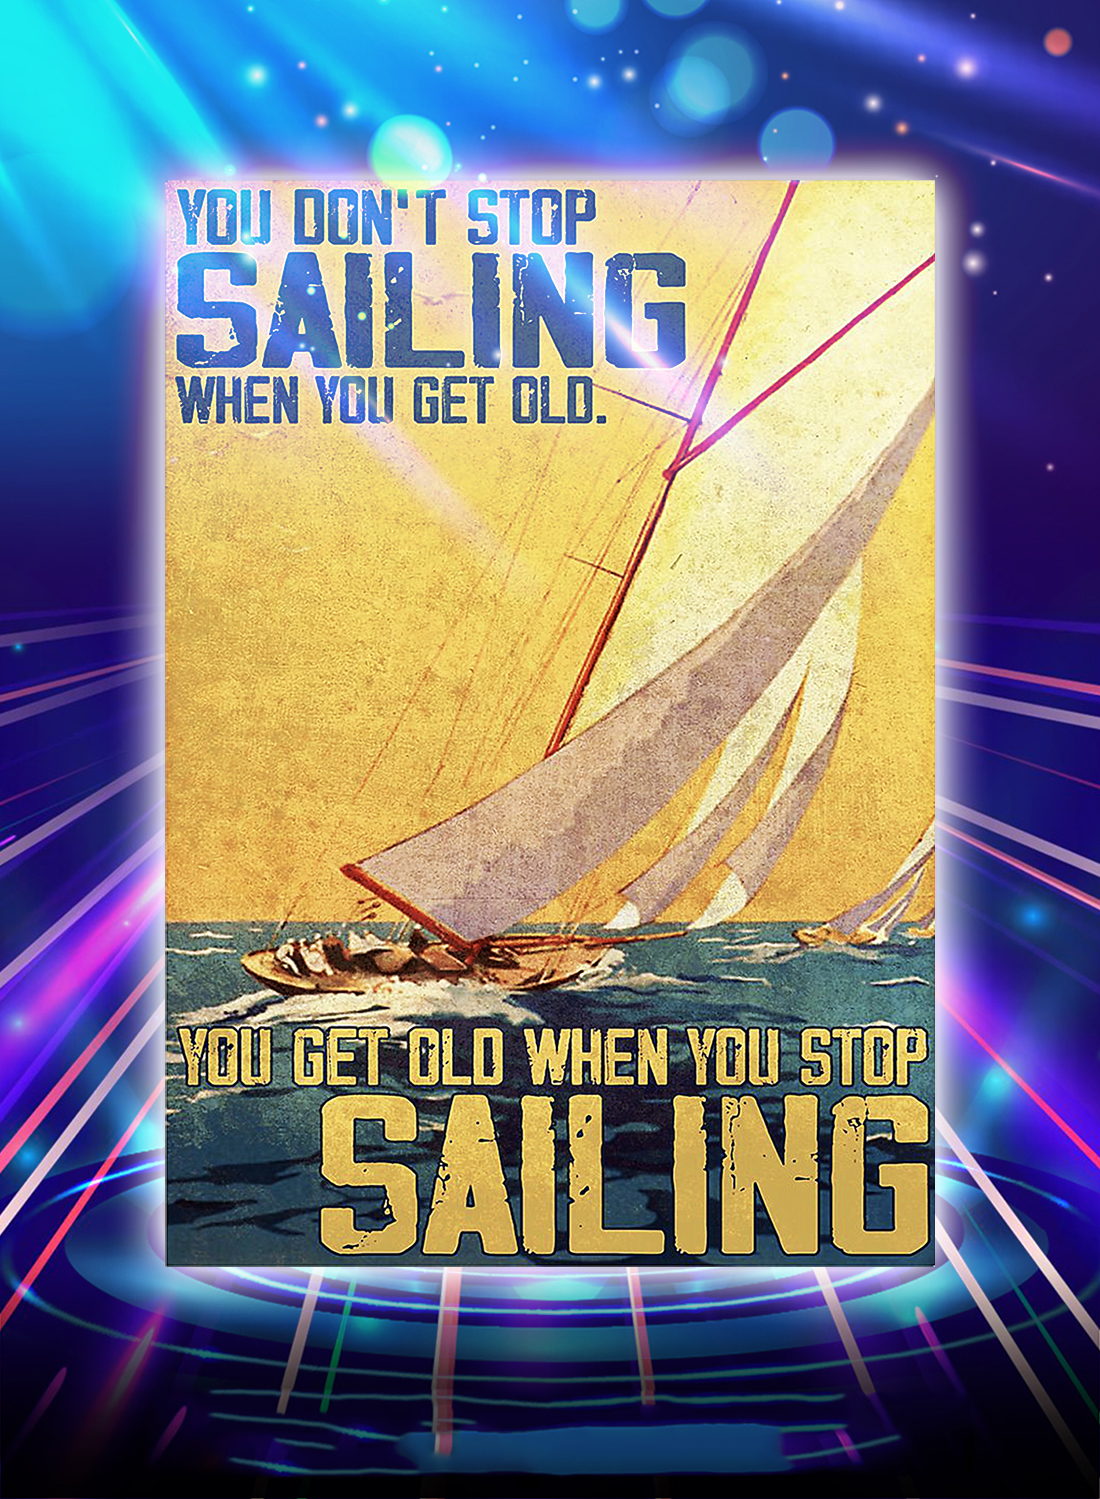 You don't stop sailing when you get old you get old when you stop sailing poster - A4